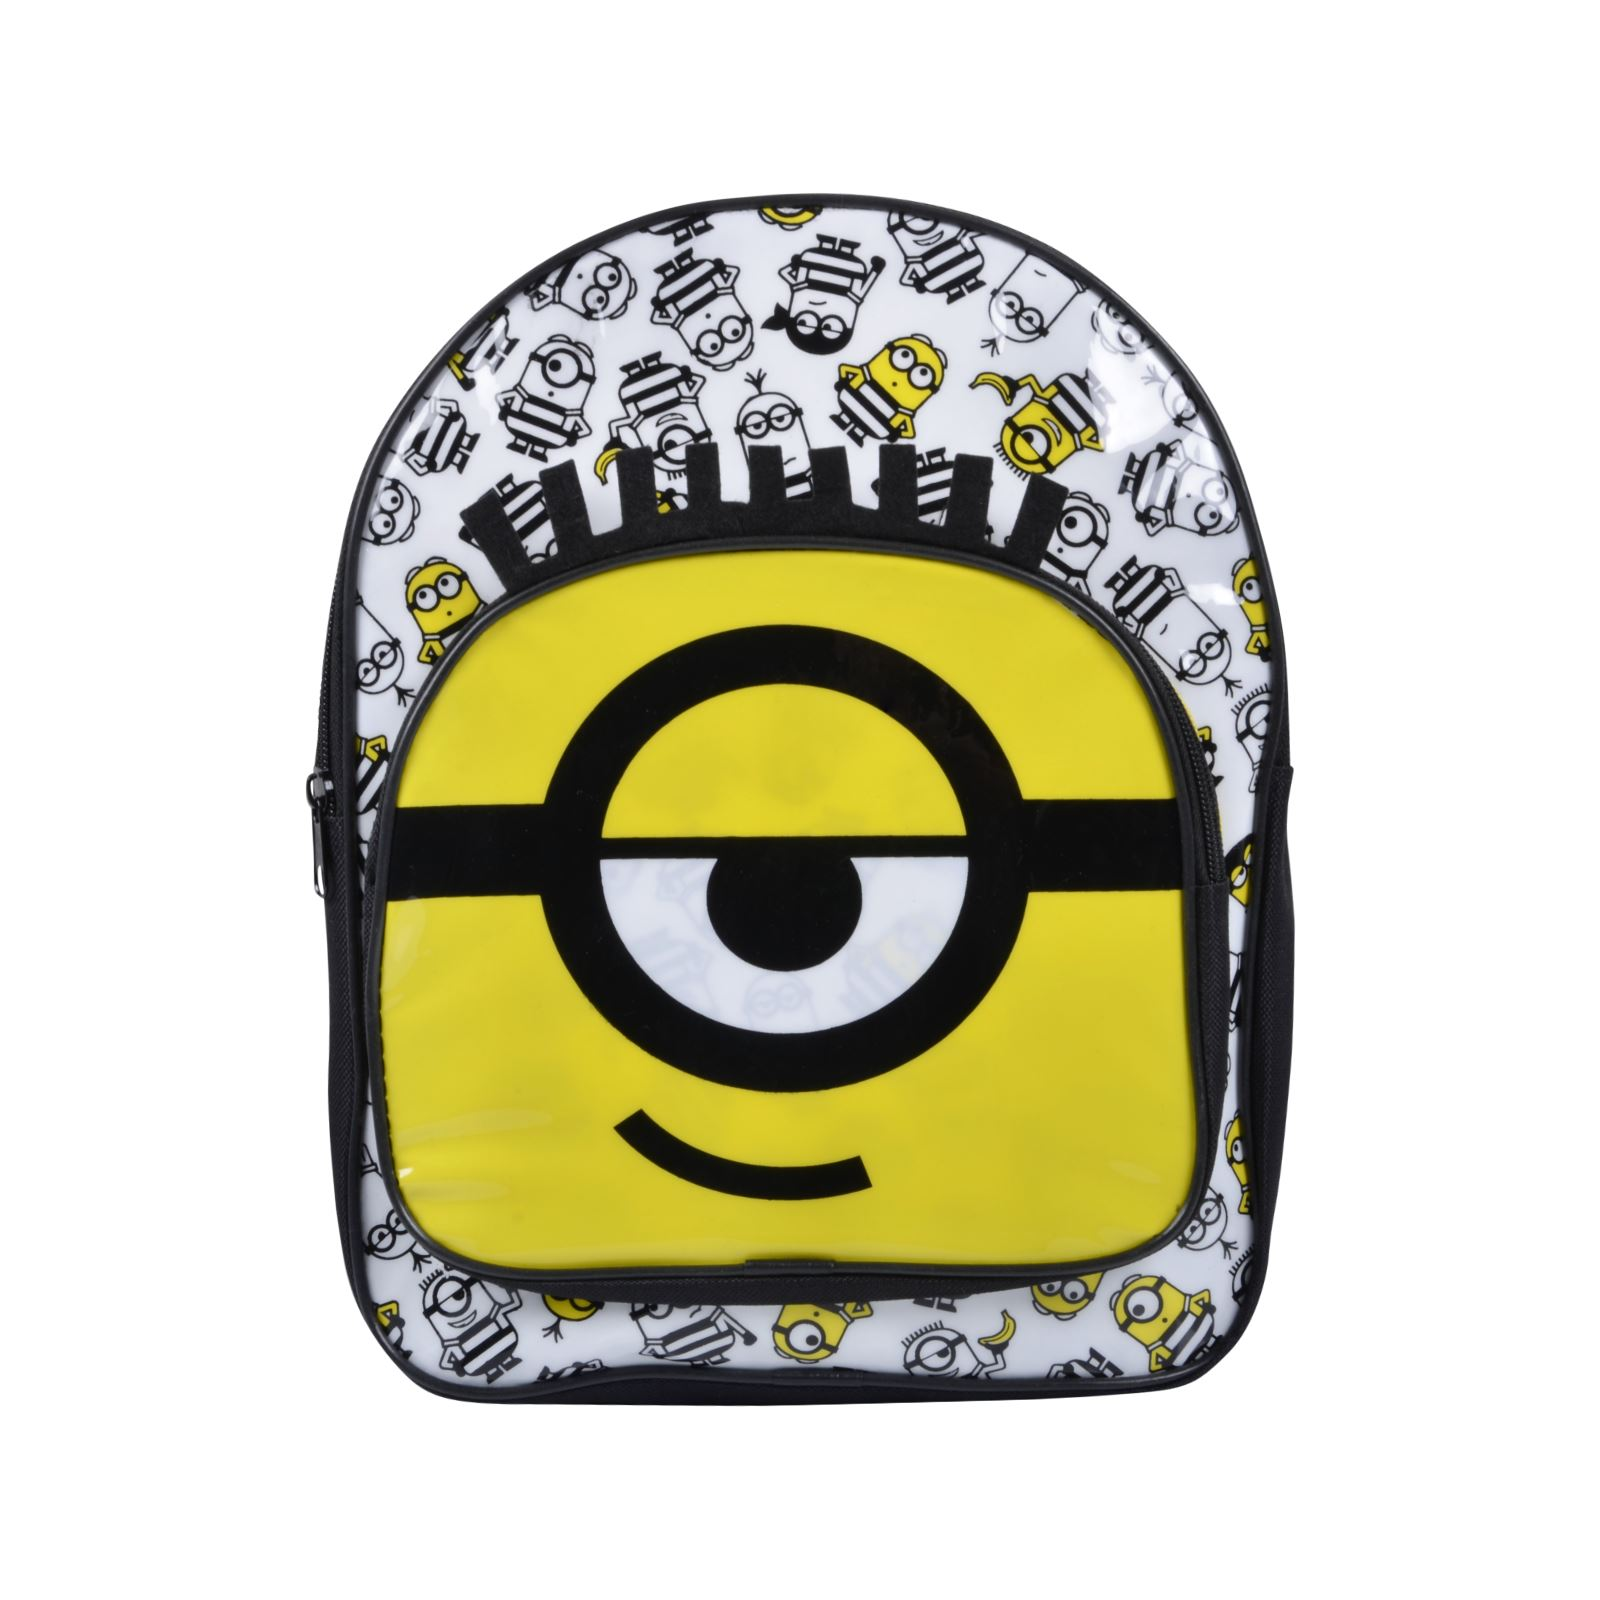 635845fe59 Details about Minions Backpack School Bag Despicable Me Kids Sports Travel  Trip Childs